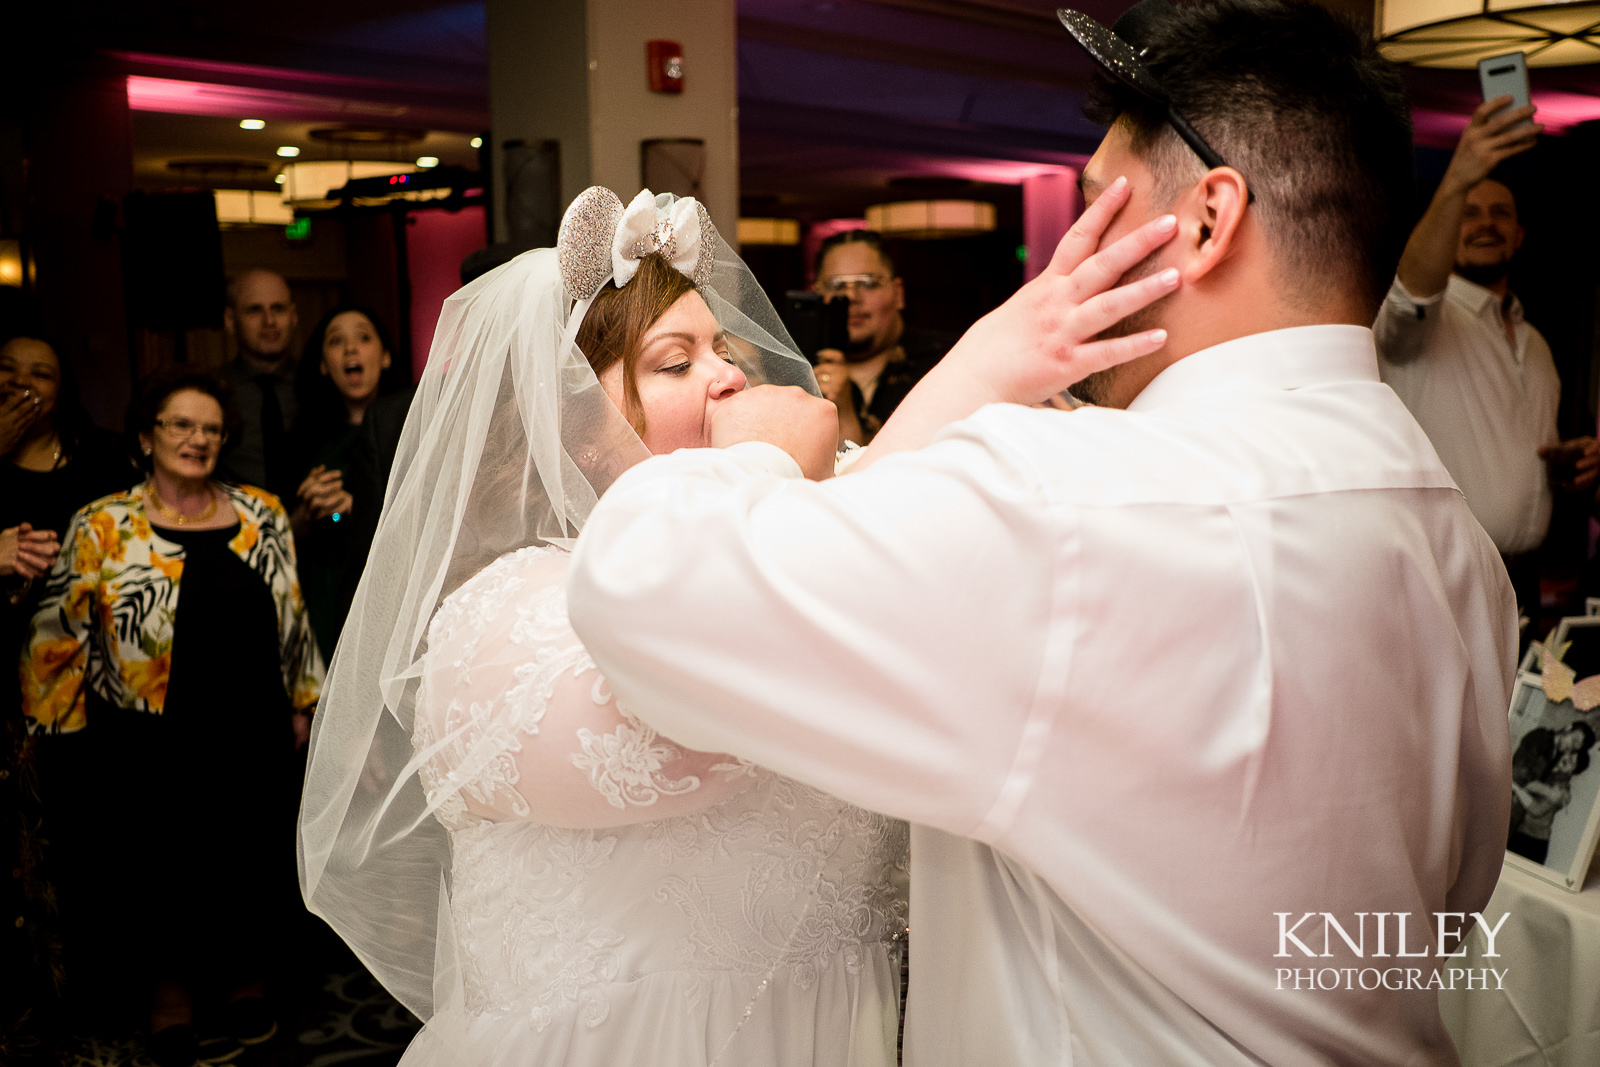 102 - Woodcliff Hotel - Rochester NY wedding photo - Kniley Photography.jpg